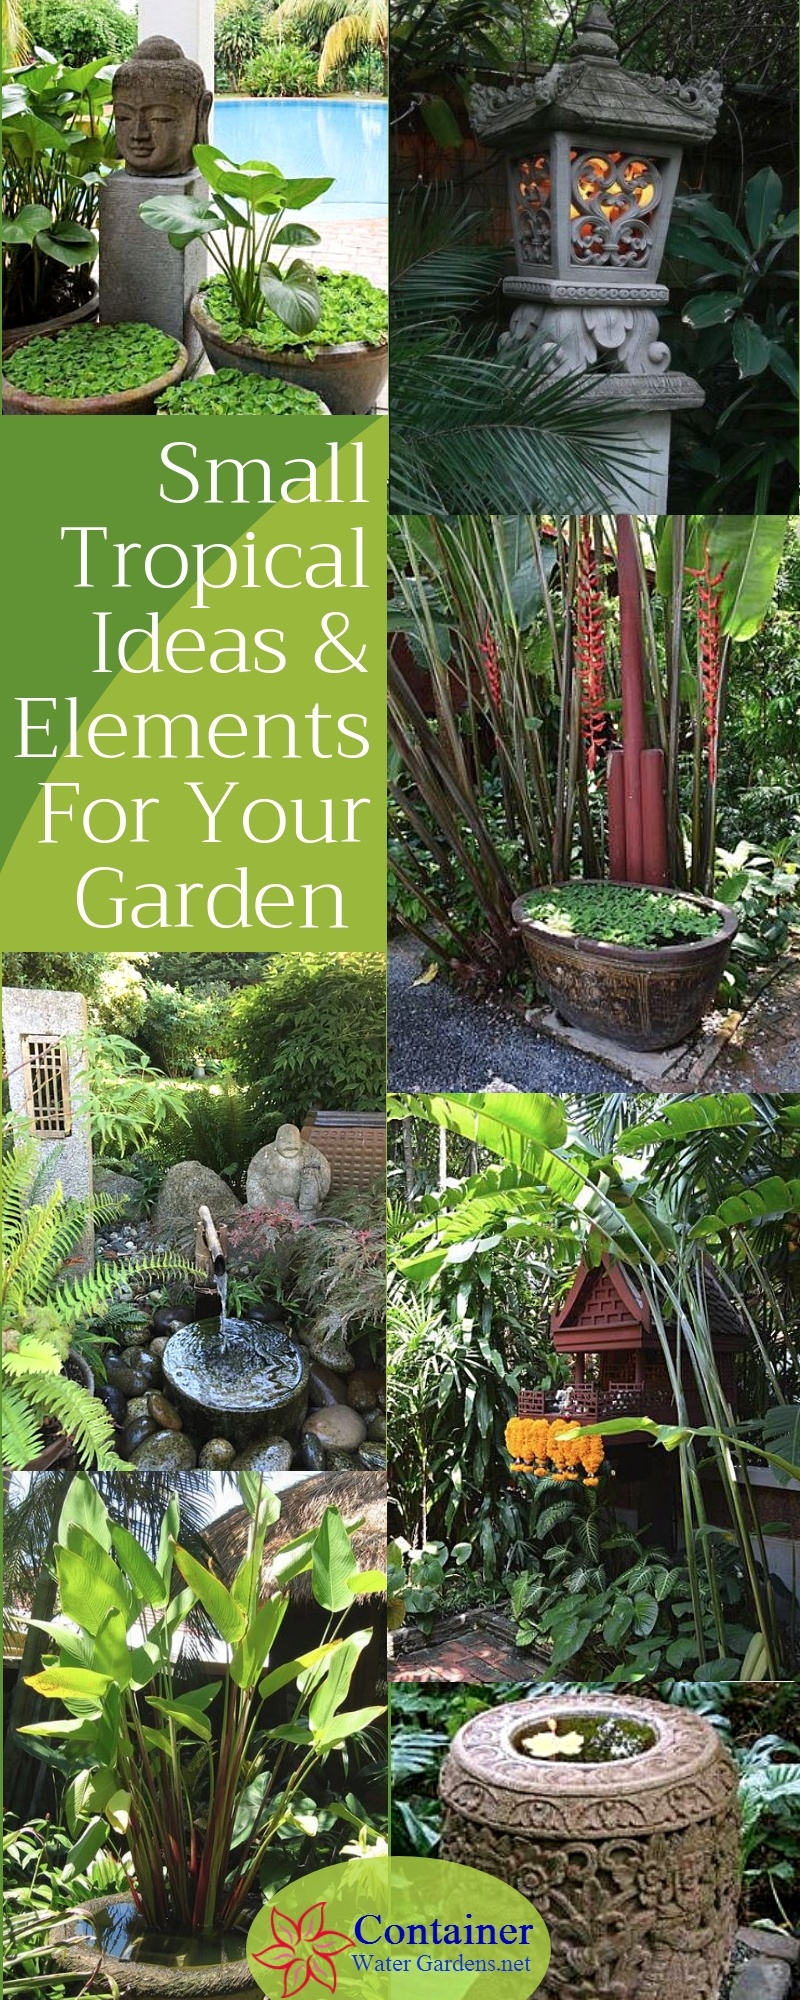 Small Tropical Ideas & Elements For Your Garden ...